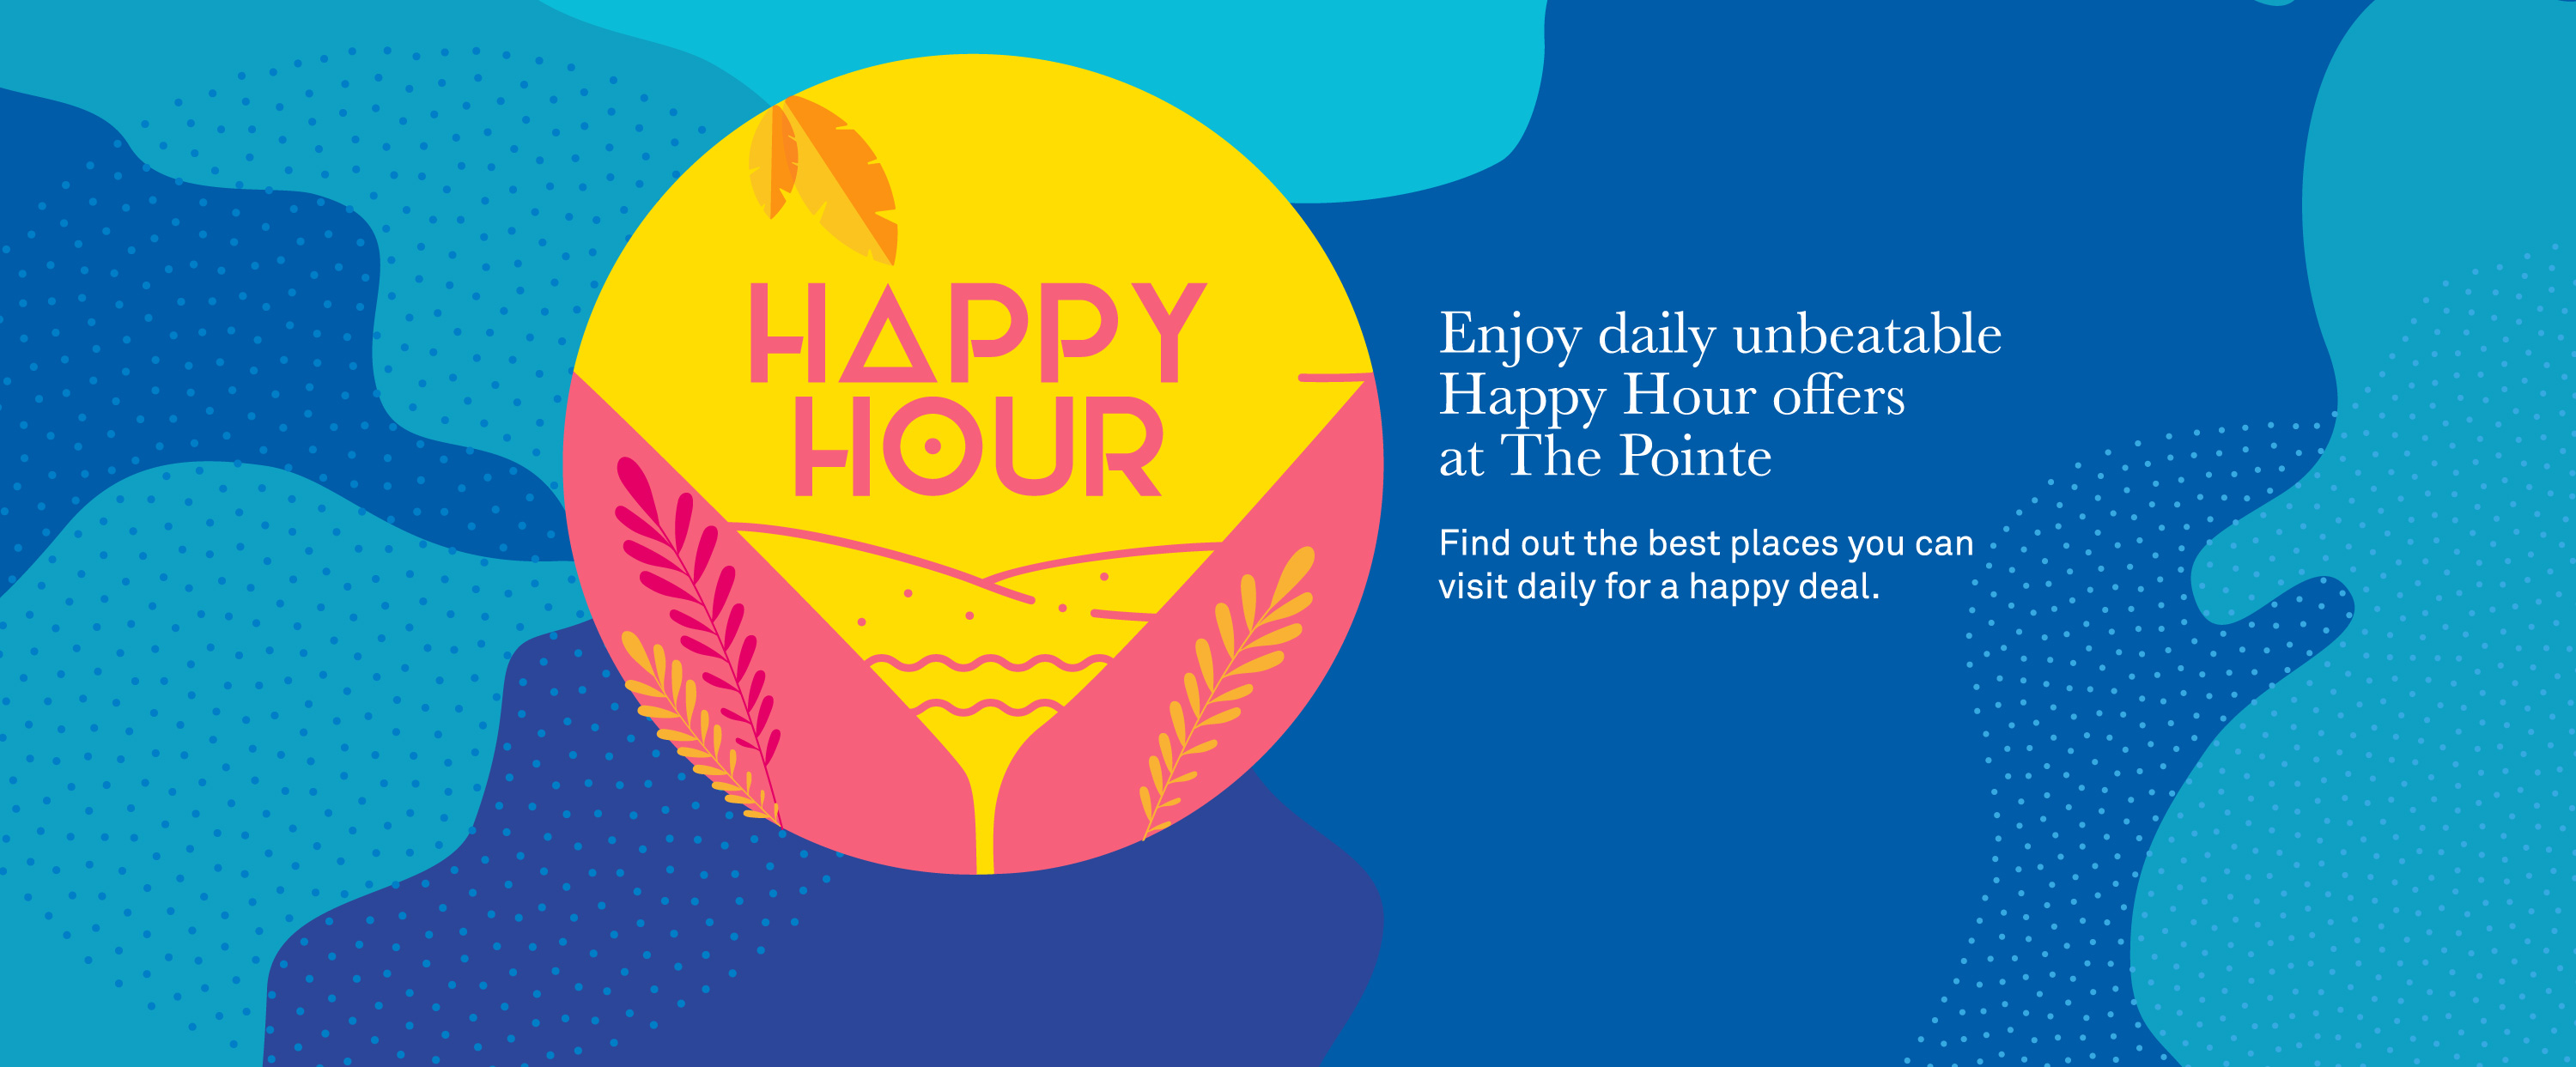 THE POINTE'S DUBAI'S HAPPY HOUR OFFERS ARE ALL YOU NEED TO RELAX